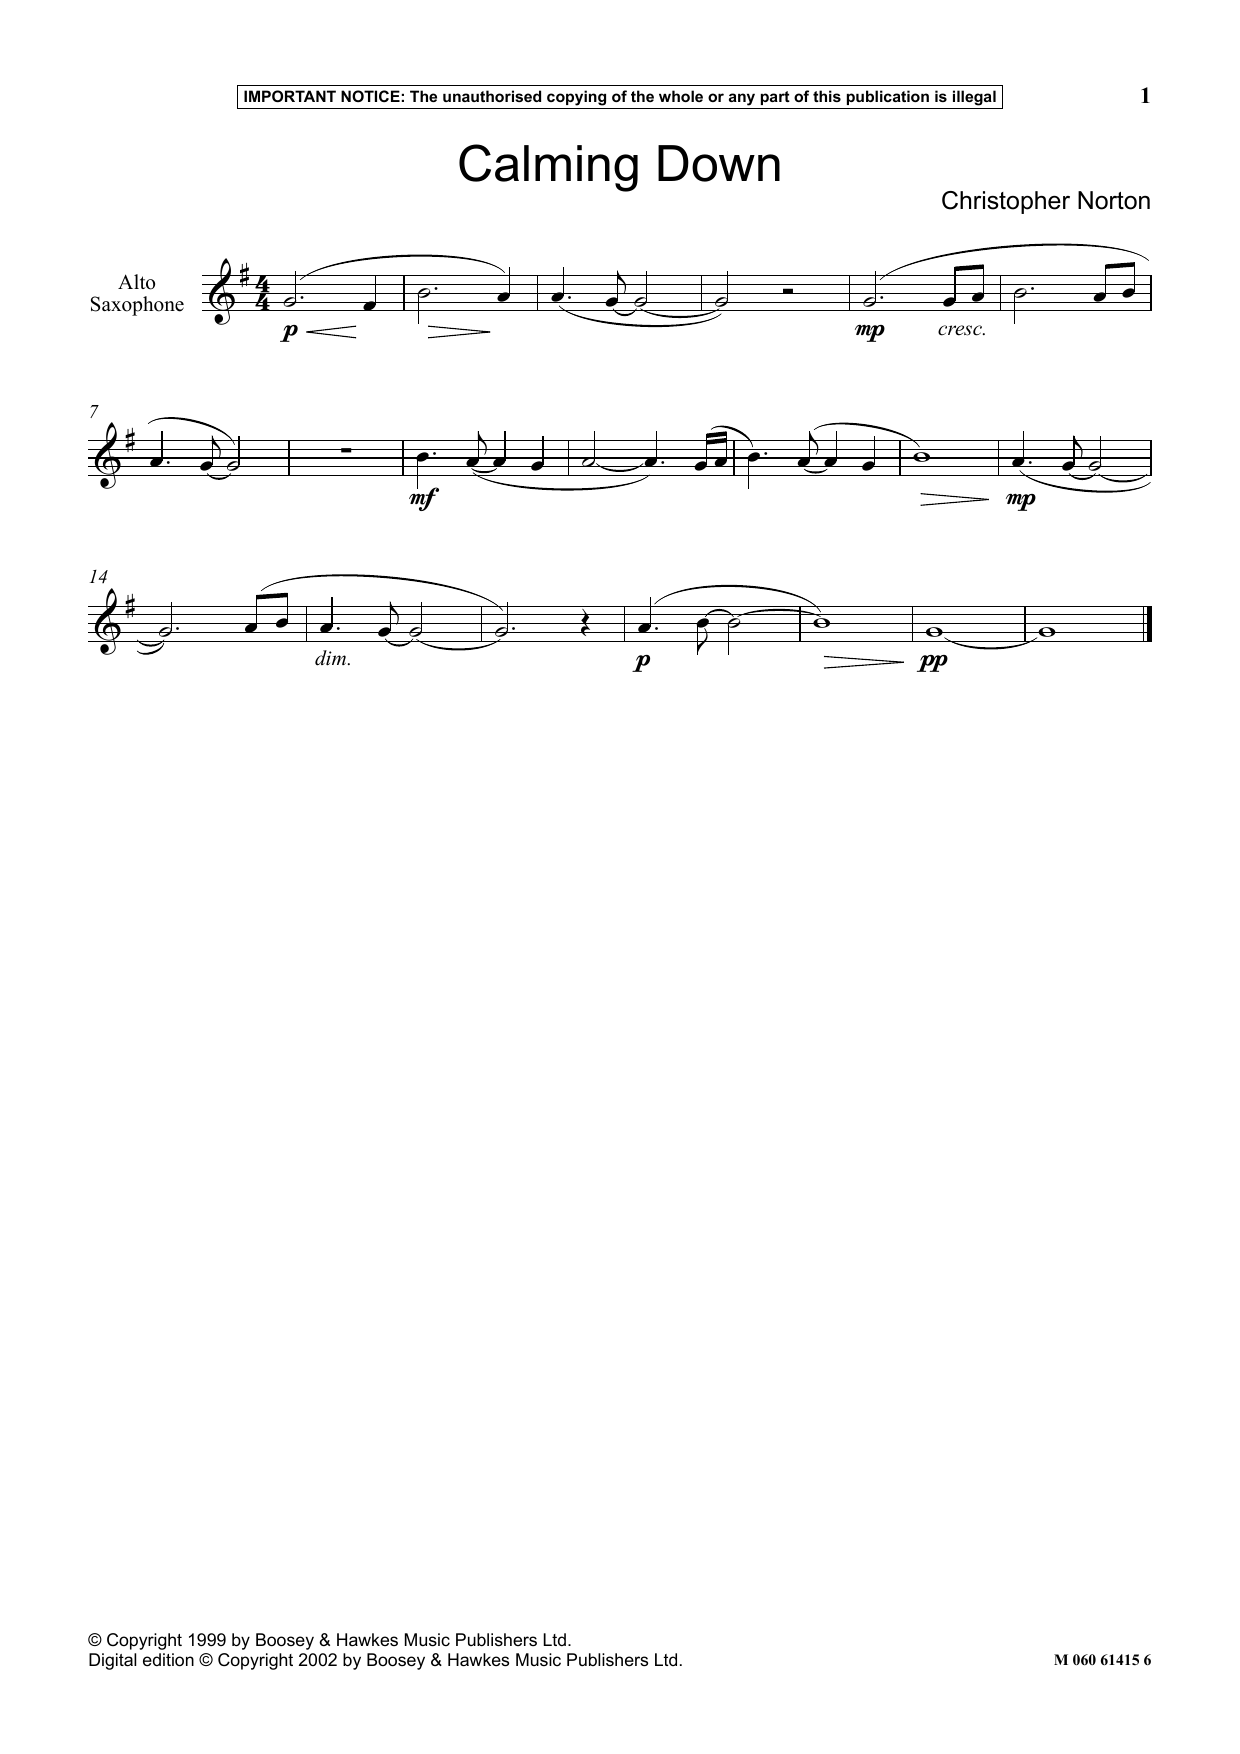 Christopher Norton Calming Down sheet music notes and chords. Download Printable PDF.